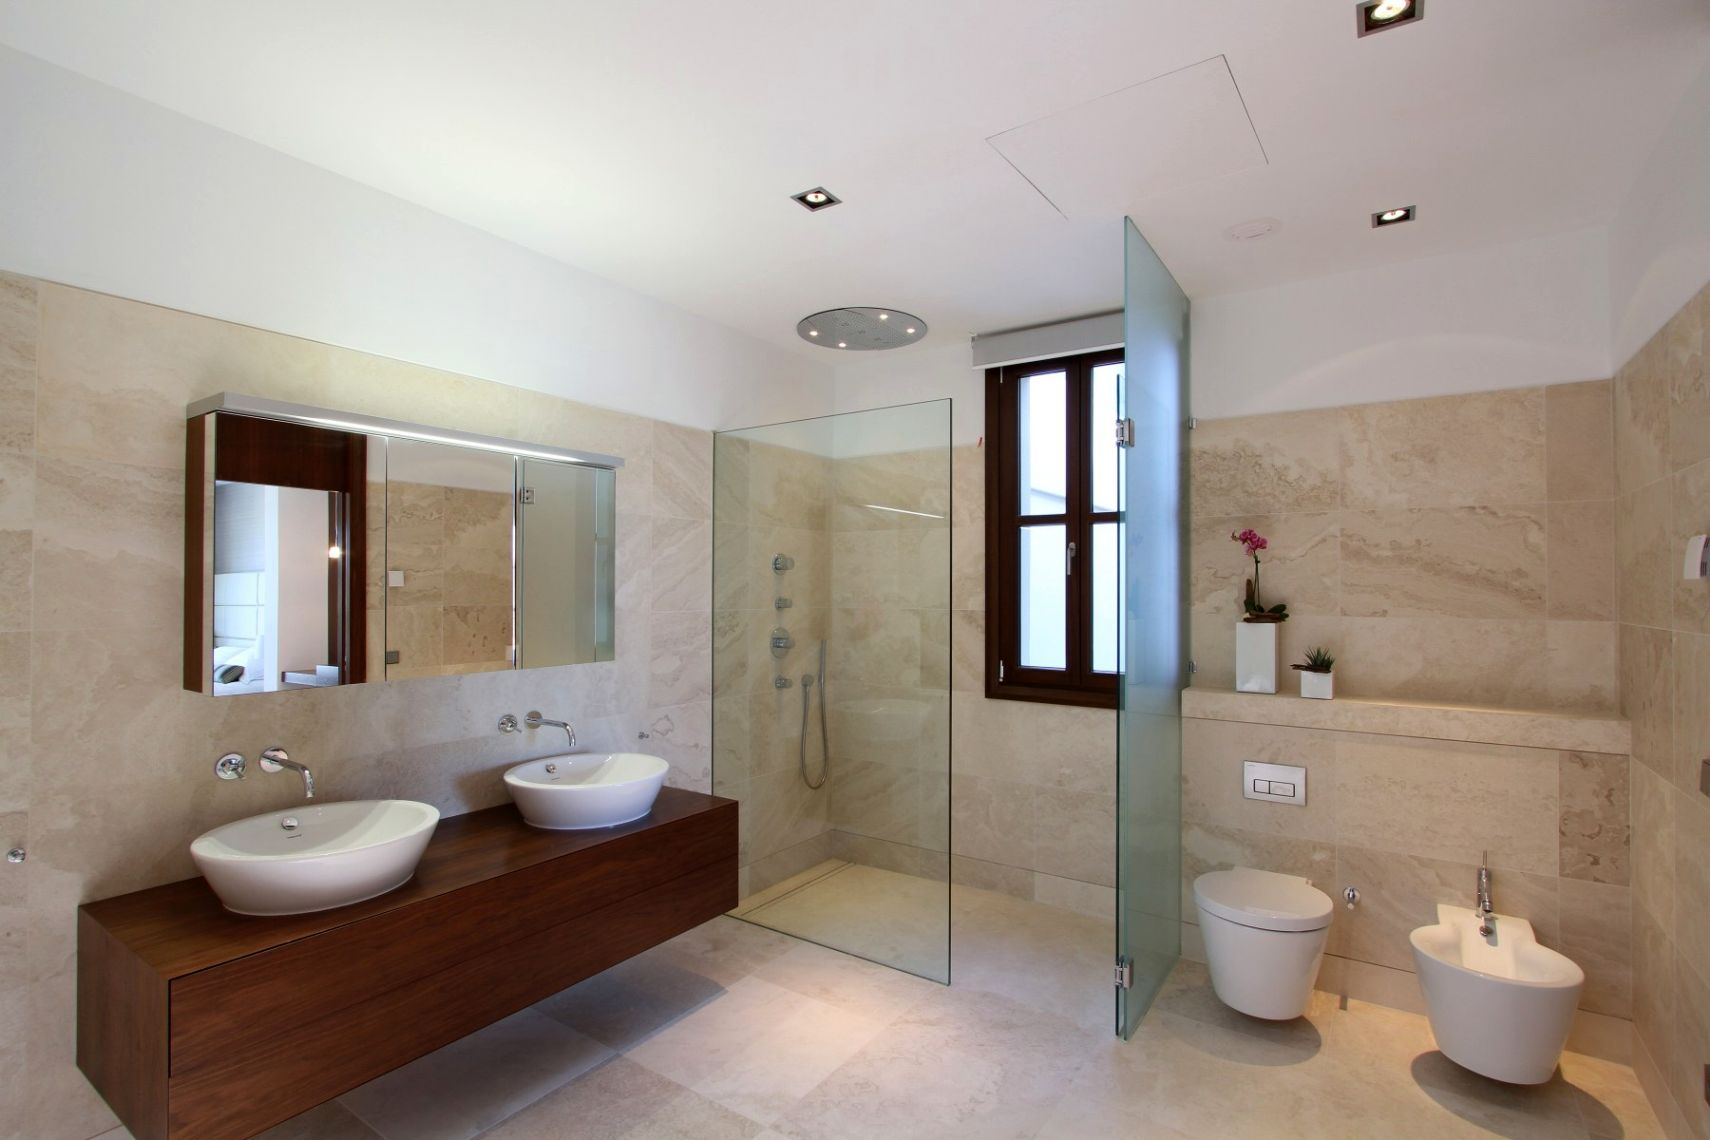 15 unbelievable modern bathroom interior designs for Interior designs bathrooms ideas